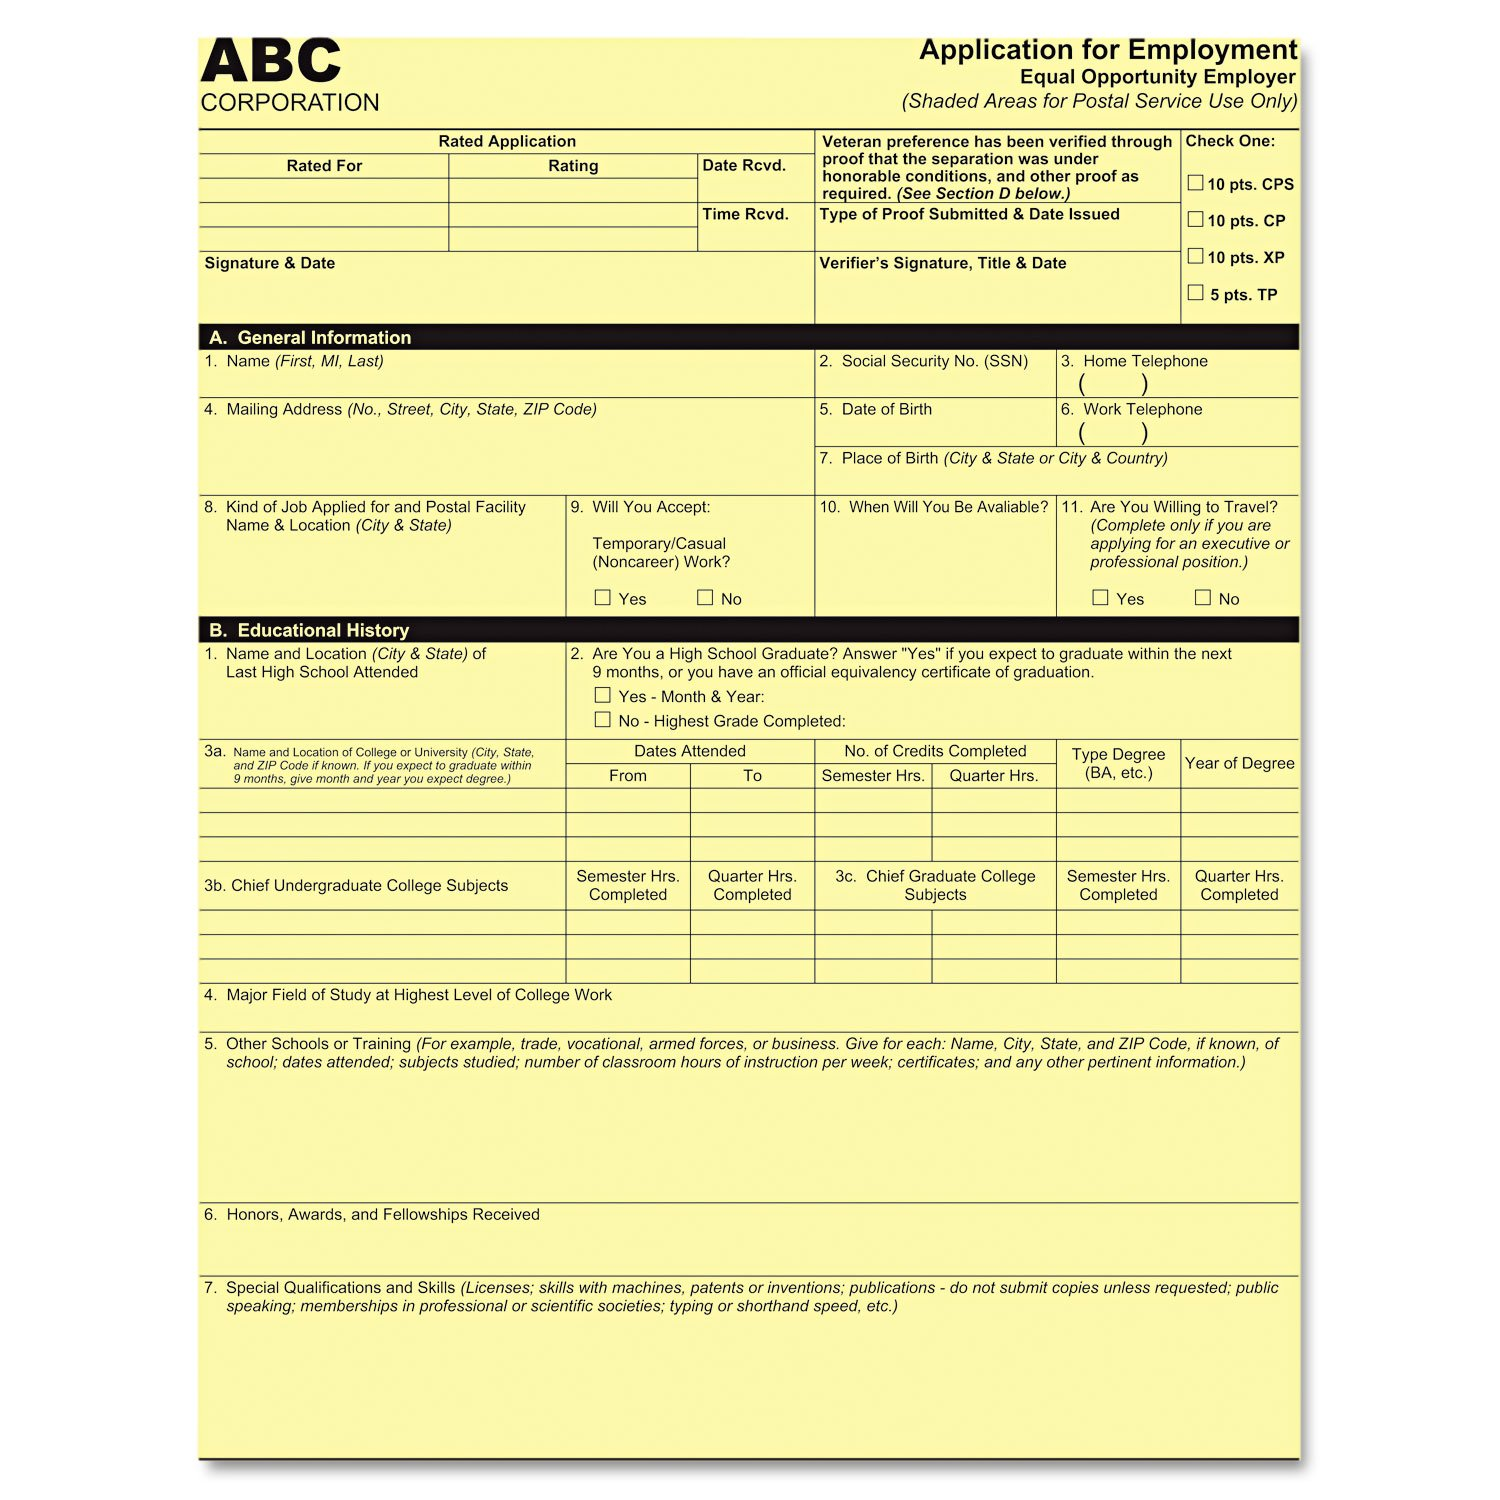 PM COMPANY Digital Carbonless Paper 8-1/2 x 11 Inches One-Part, Canary, 500 Sheets per Pack (PMC59100)